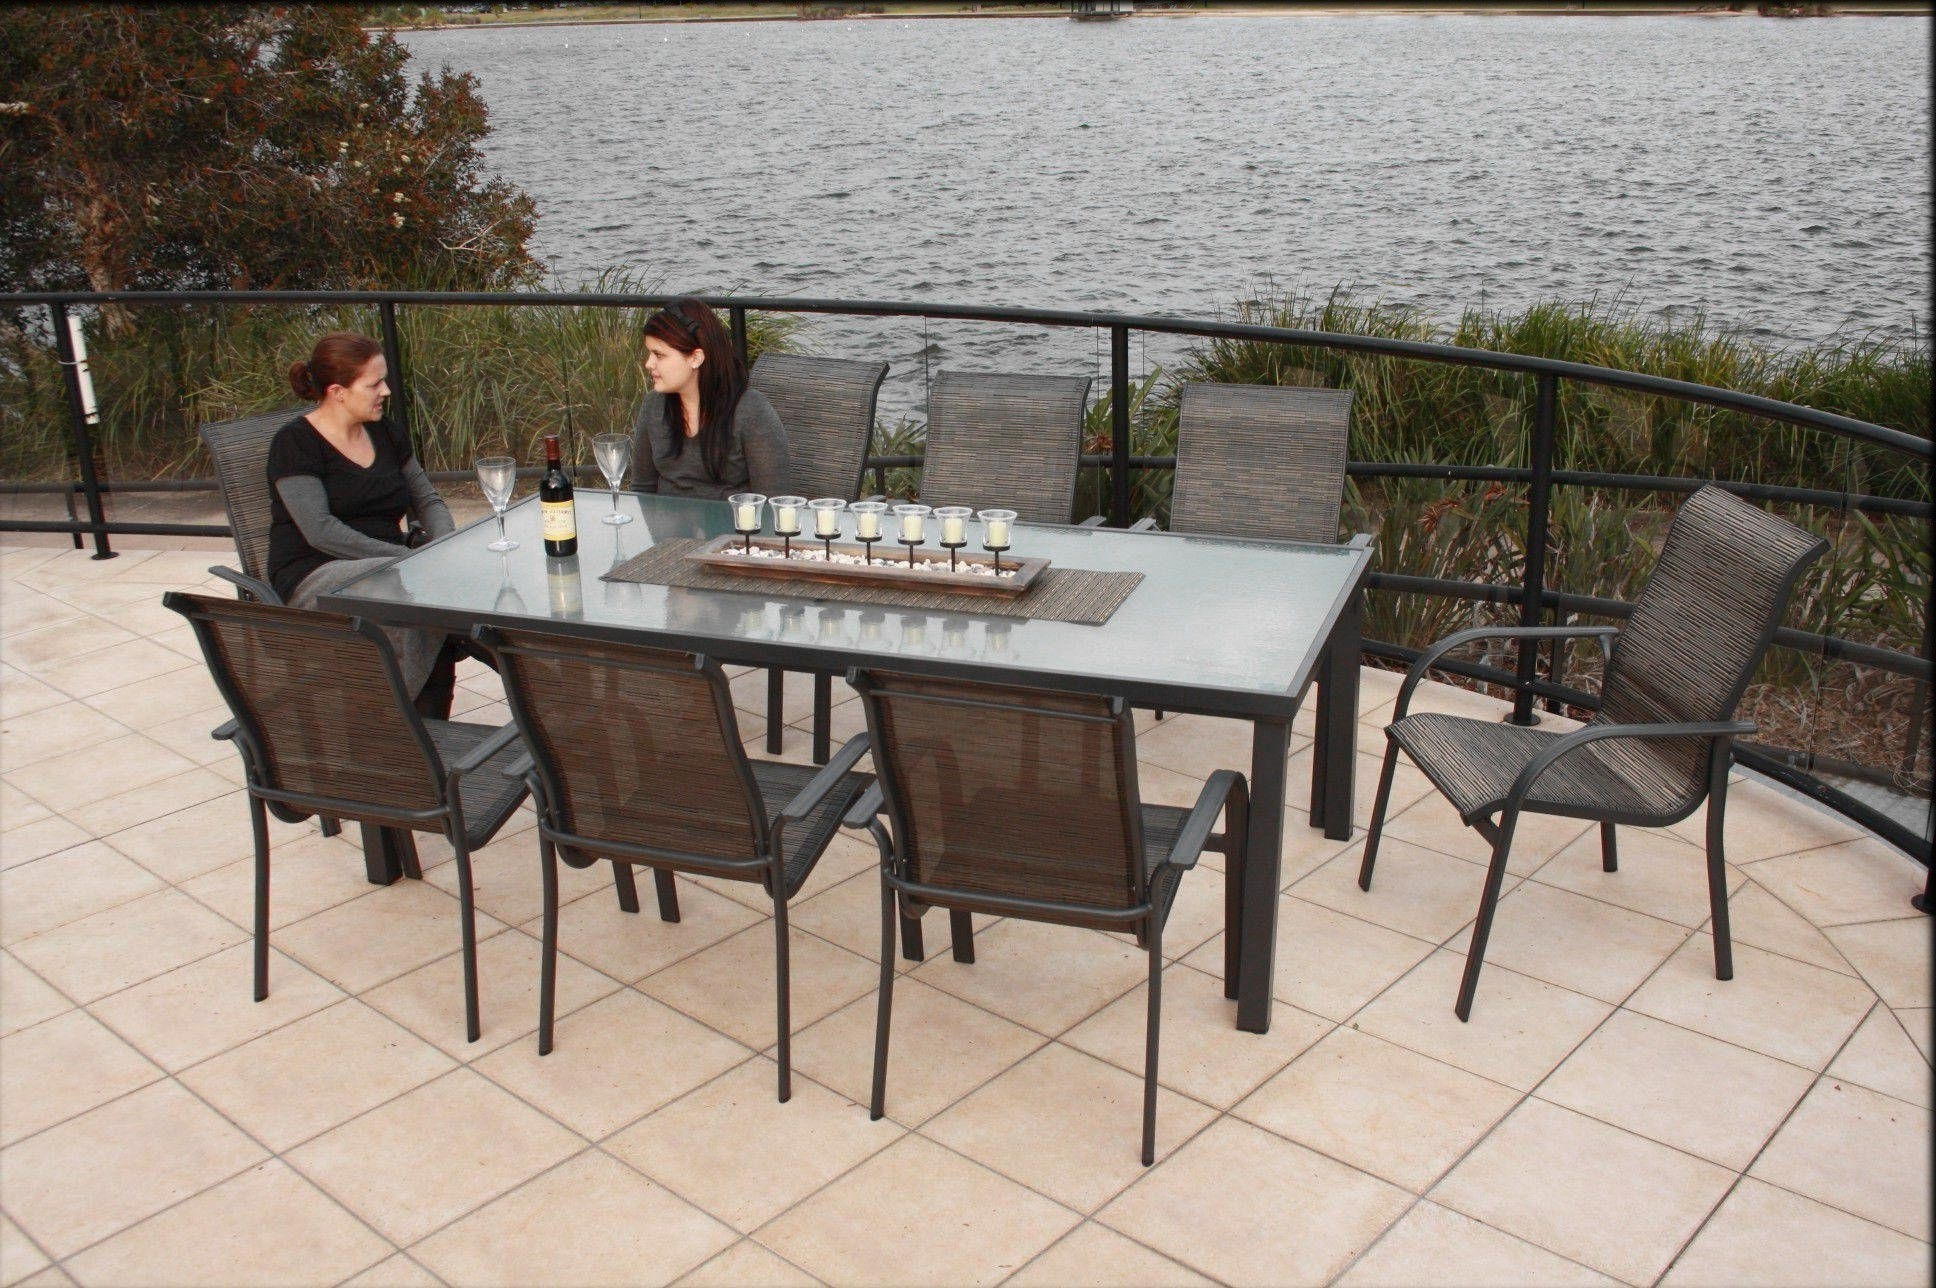 Ebay Patio Conversation Sets Pertaining To Current Ebay Patio Conversation Sets F49X About Remodel Rustic Home Design (View 6 of 15)